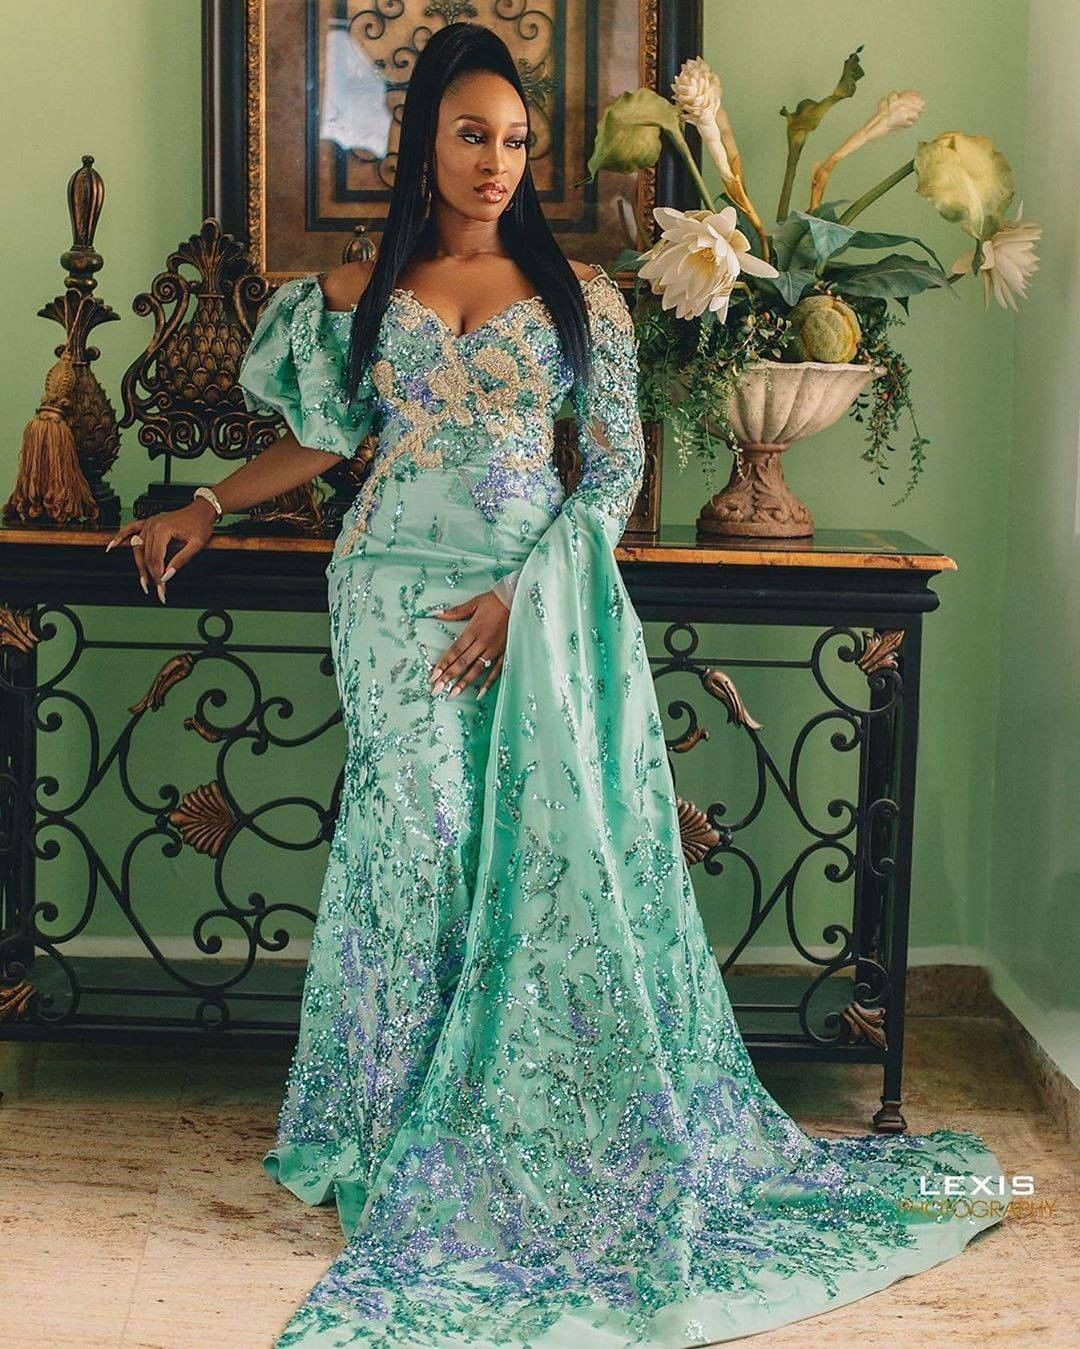 One Hand CaOne Hand Cape Sleeve And Cap Sleeve On Mermaid GownOne Hand Cape Sleeve And Cap Sleeve On MermOne Hand Cape Sleeve And Cap Sleeve On Mermaid Gownaid Gownpe Sleeve And Cap Sleeve On Mermaid Gown